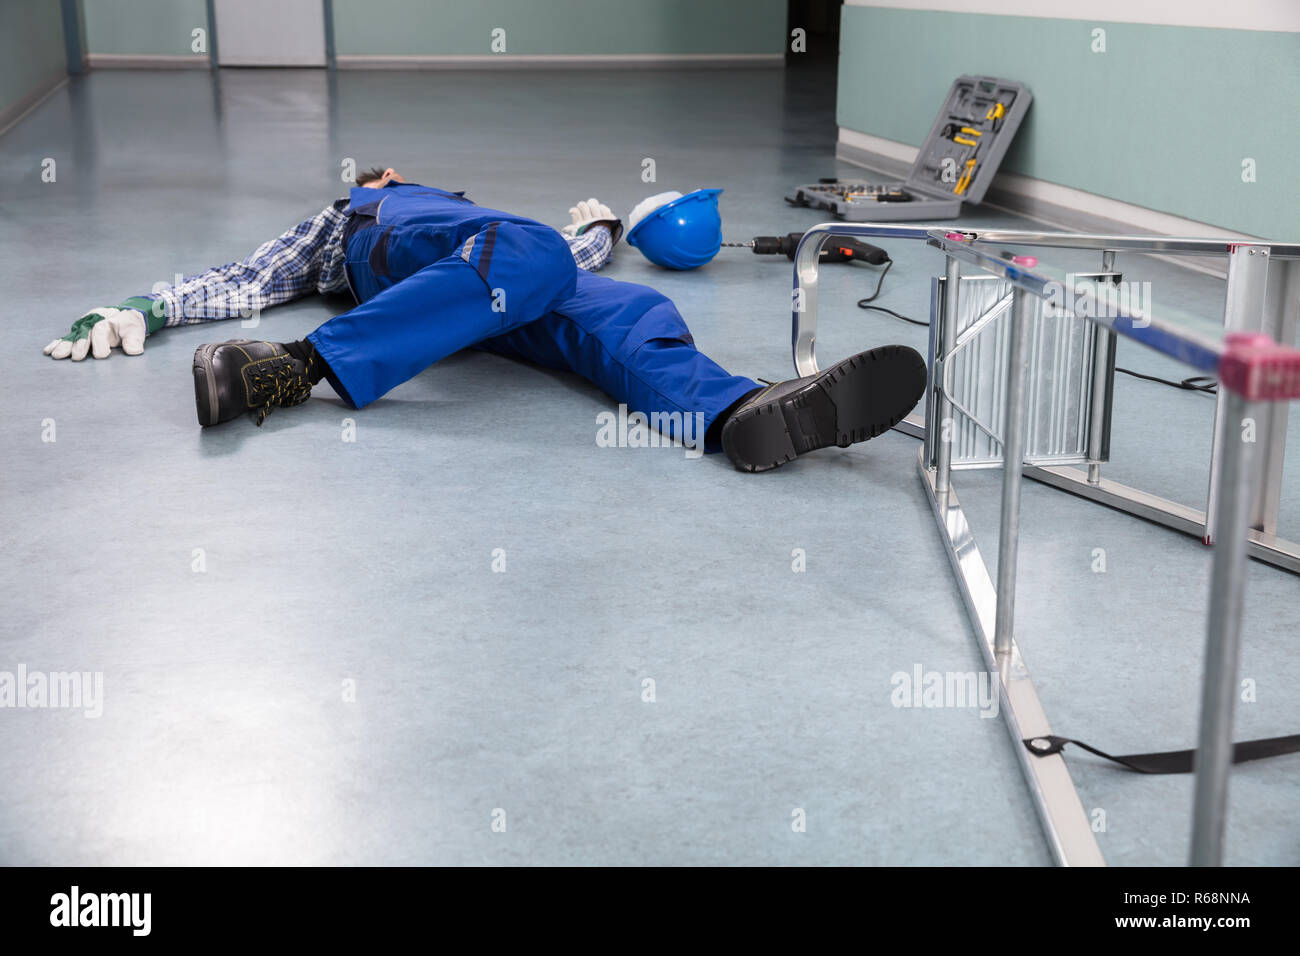 Handyman Fallen From Ladder - Stock Image